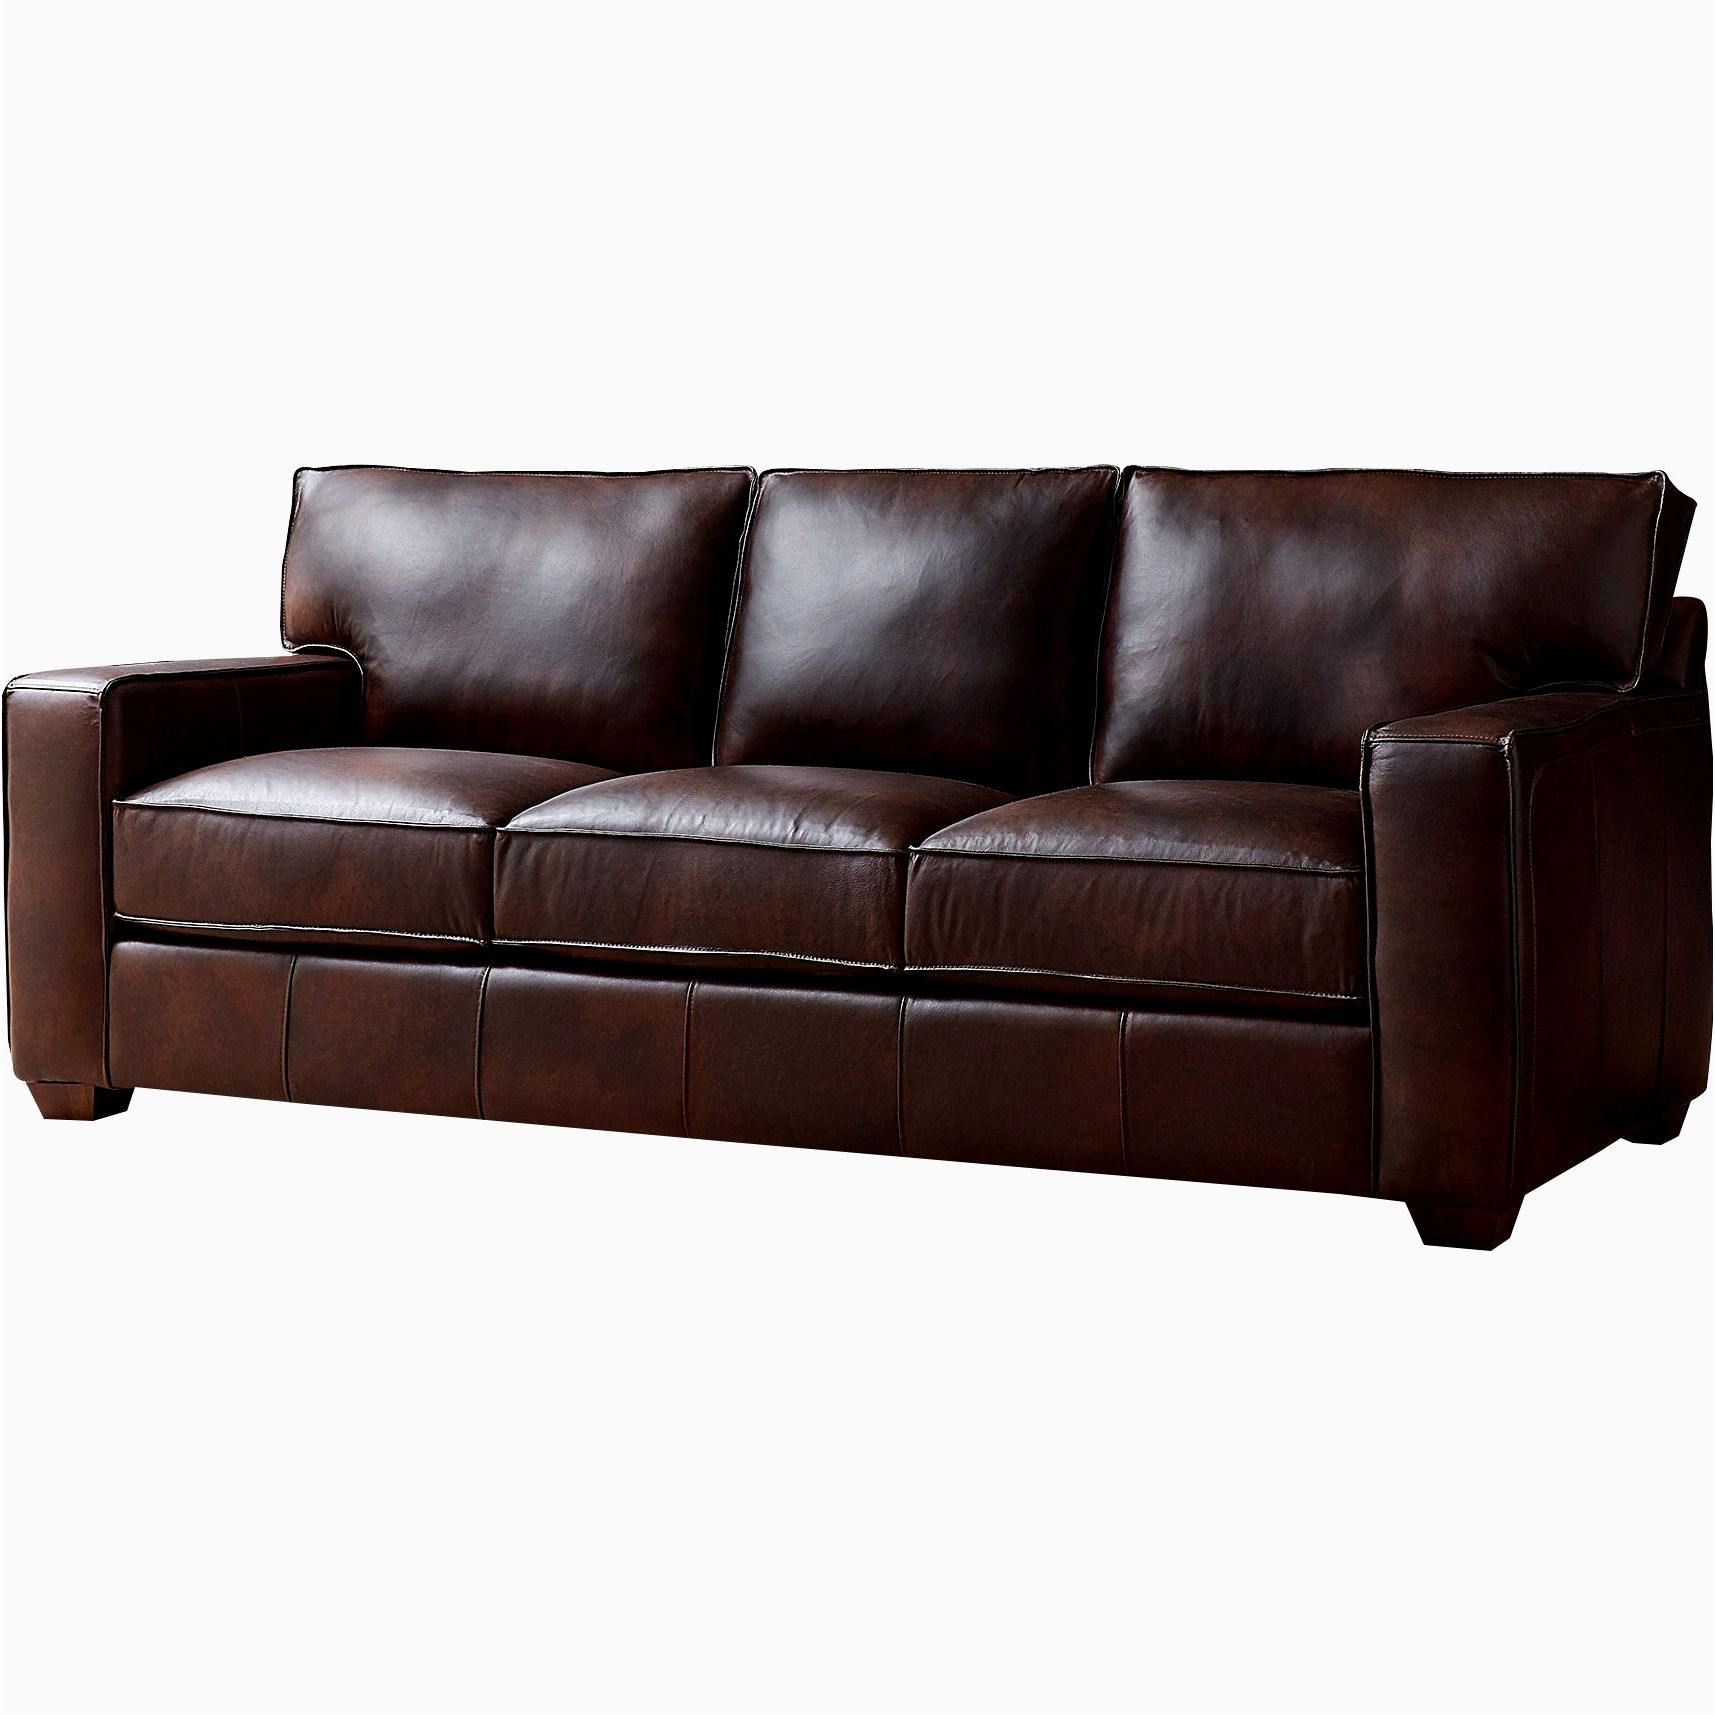 best of serta upholstery sofa concept-Stylish Serta Upholstery sofa Gallery